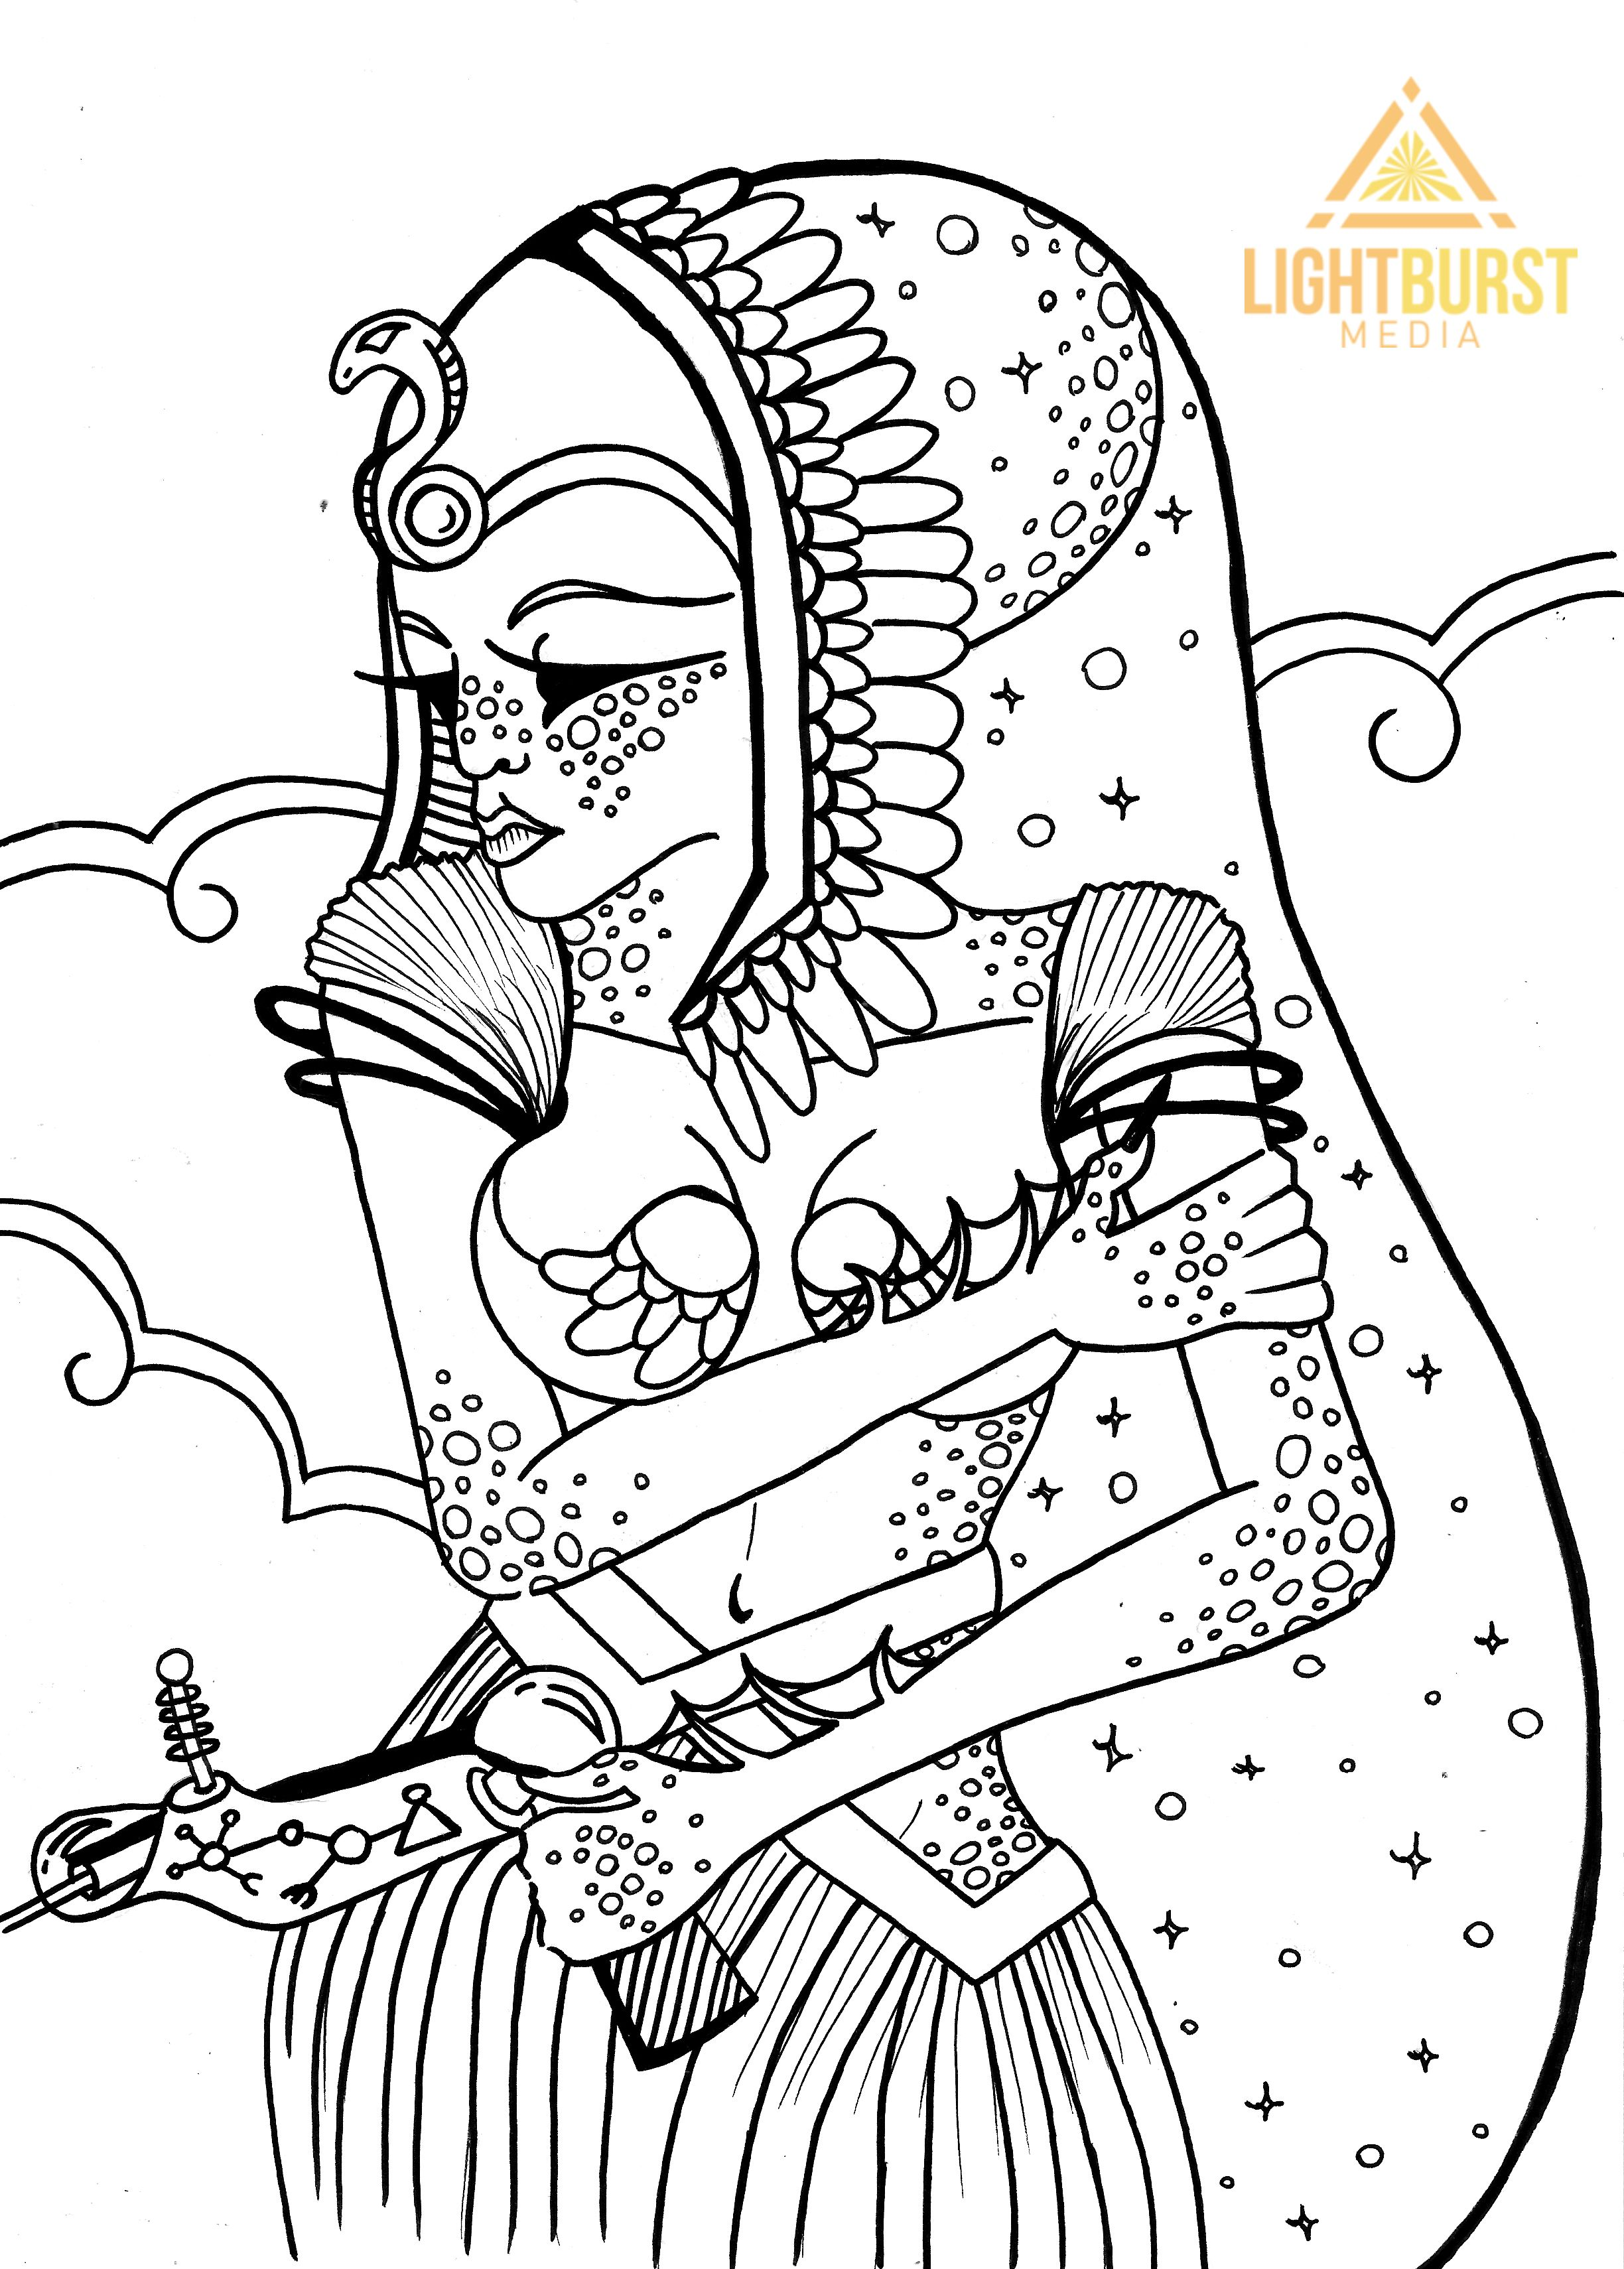 Colouring in book free - Free Coloring Page From Space Dreams Sci Fi Adult Adventure Coloring Book Available